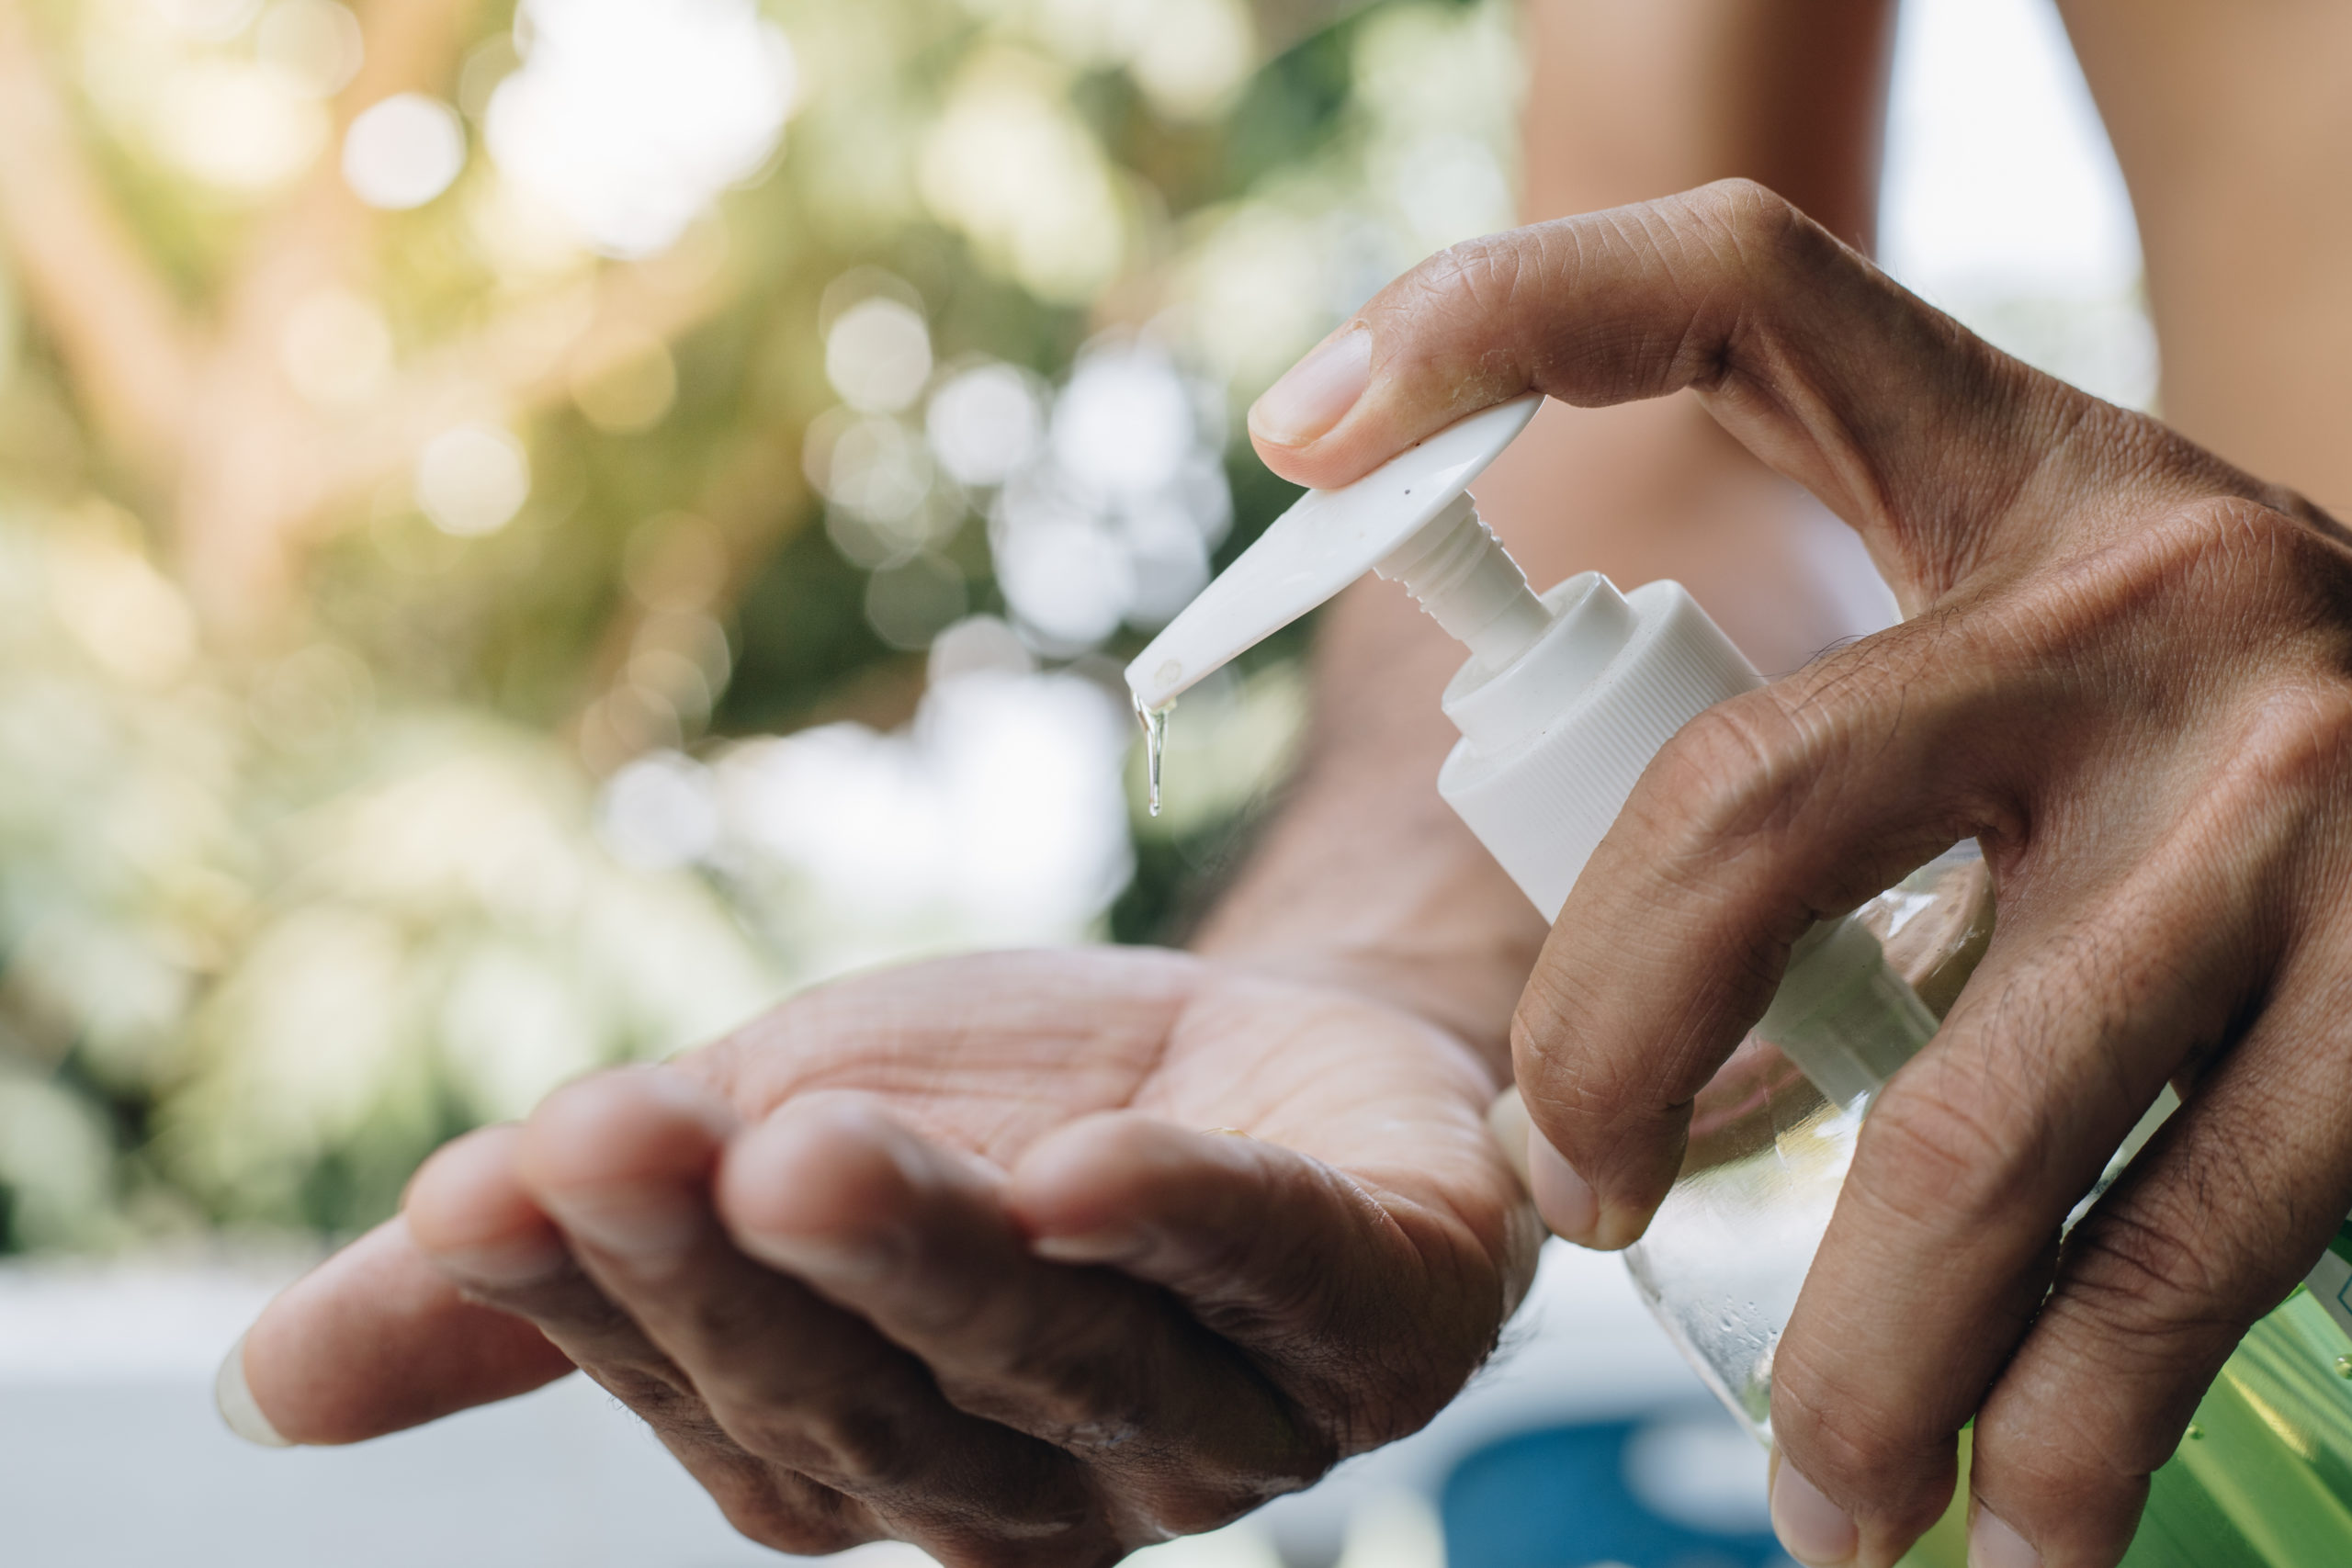 DIY: How to Make Your Own Hand Sanitizer